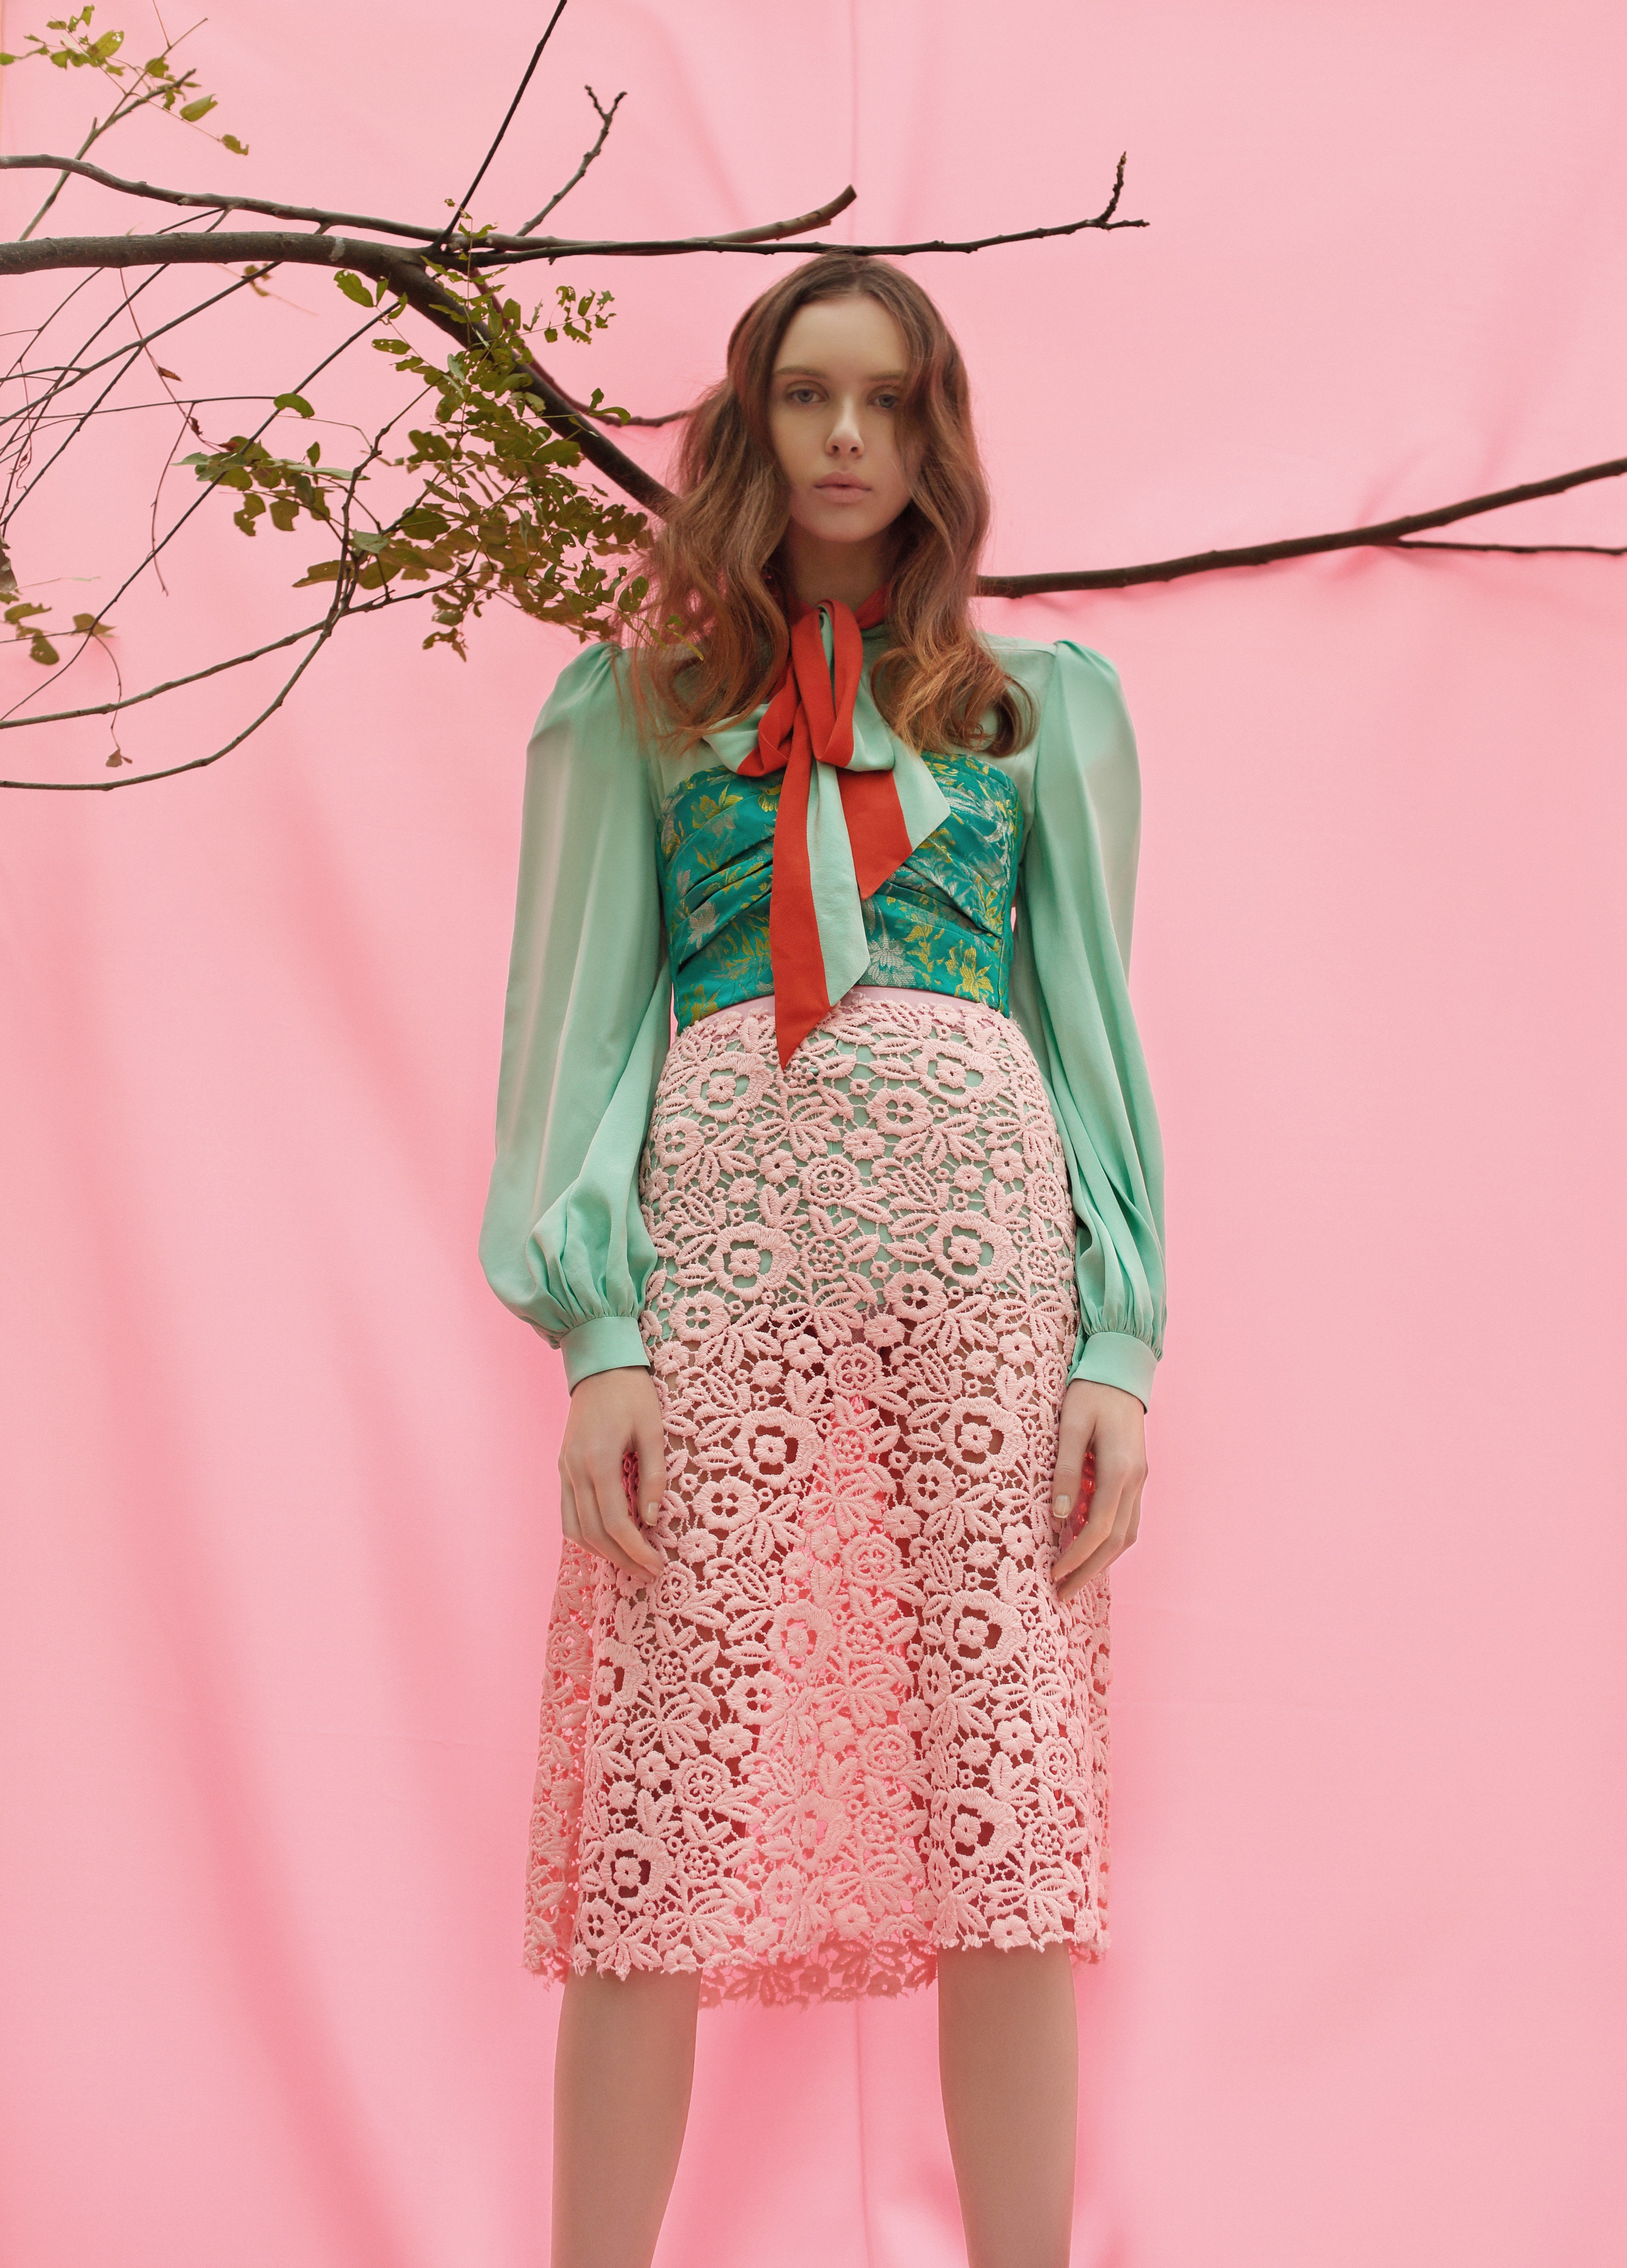 be42a75b51b Pretty pastel looks perfect for the season | South China Morning Post